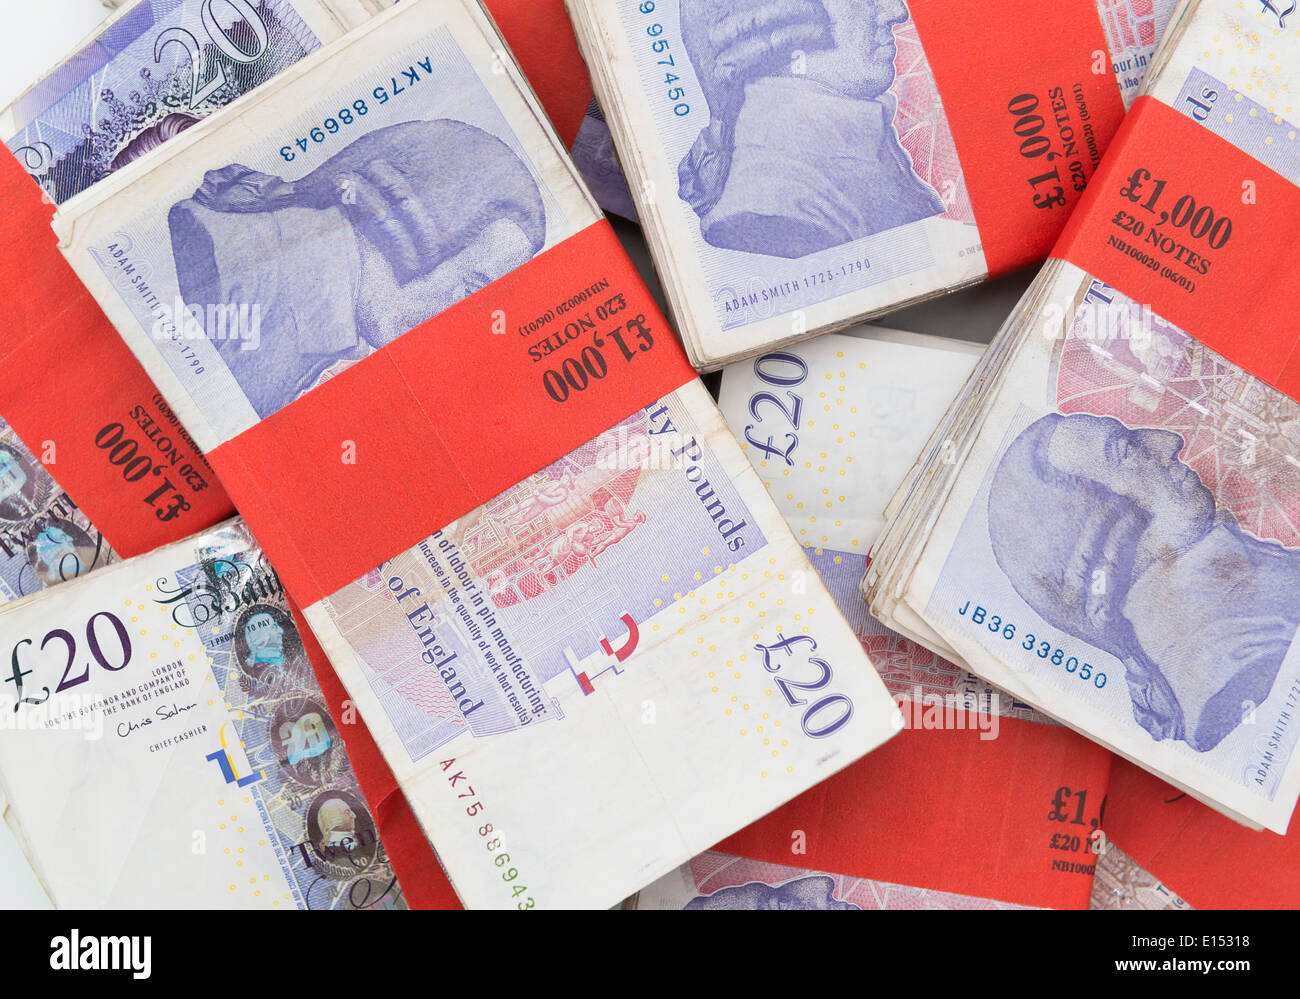 bank notes bundles stock photos bank notes bundles stock images £1000 bundles of british pounds sterling stock image